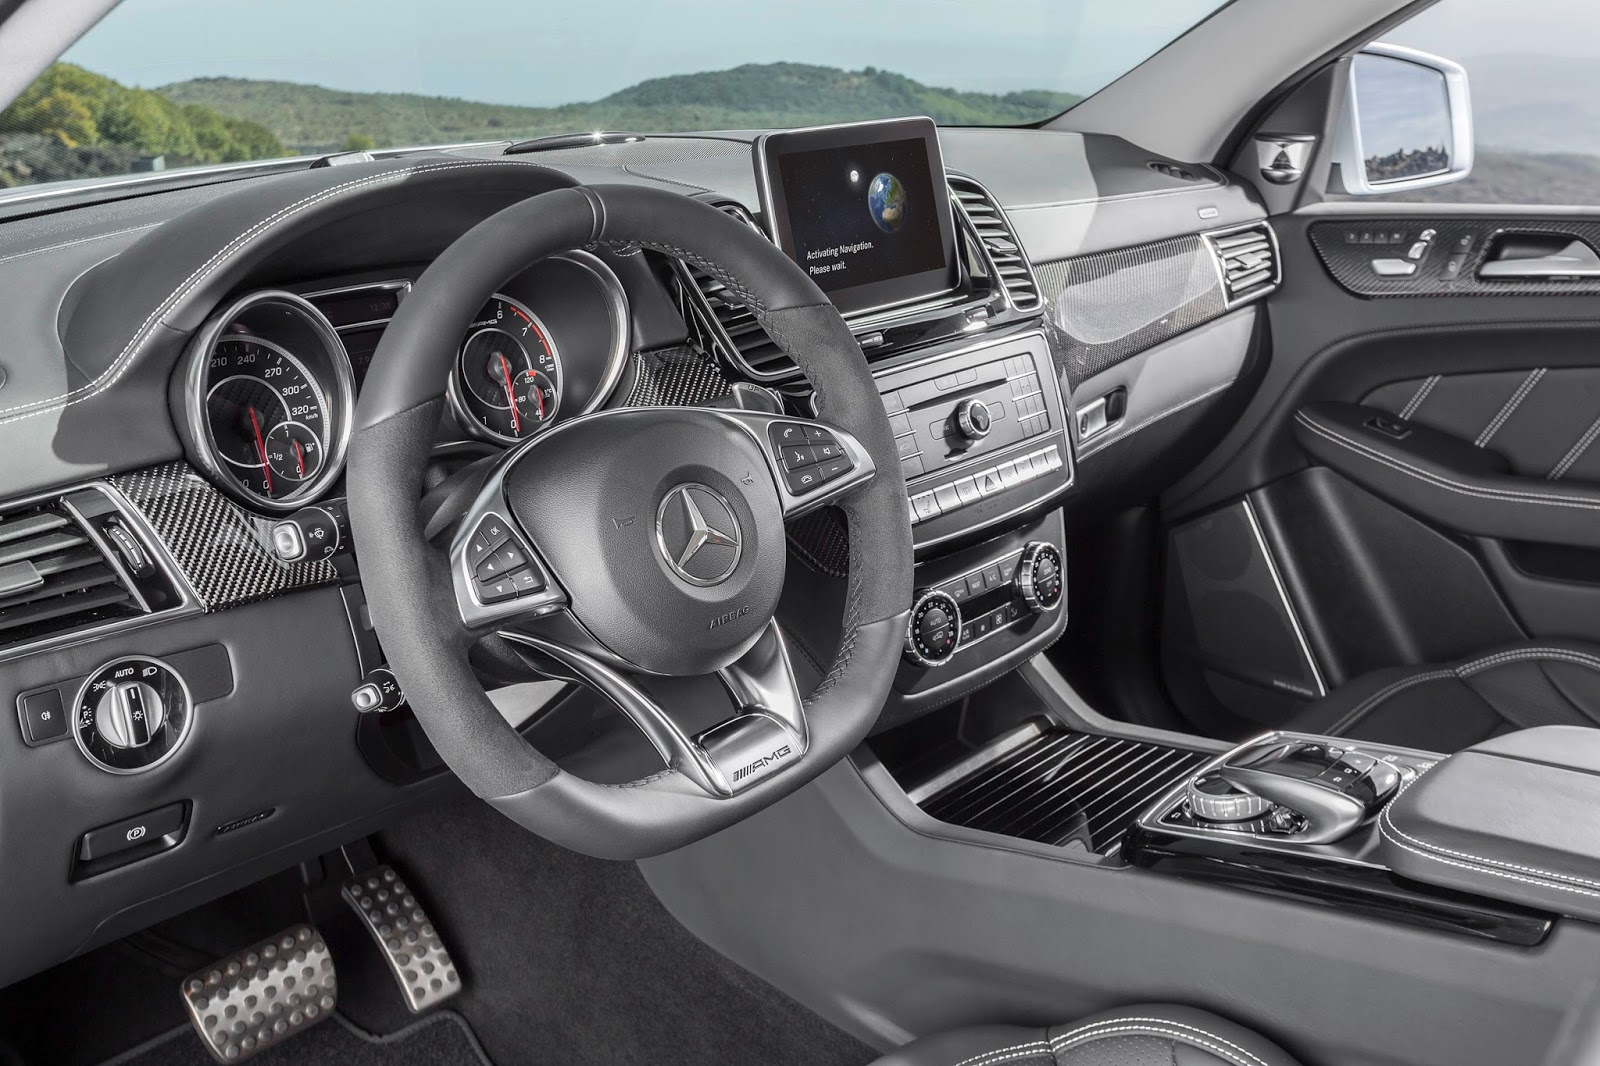 New Mercedes-AMG GLE 63 S Coupe Gets 577HP Bi-Turbo V8 | Carscoops